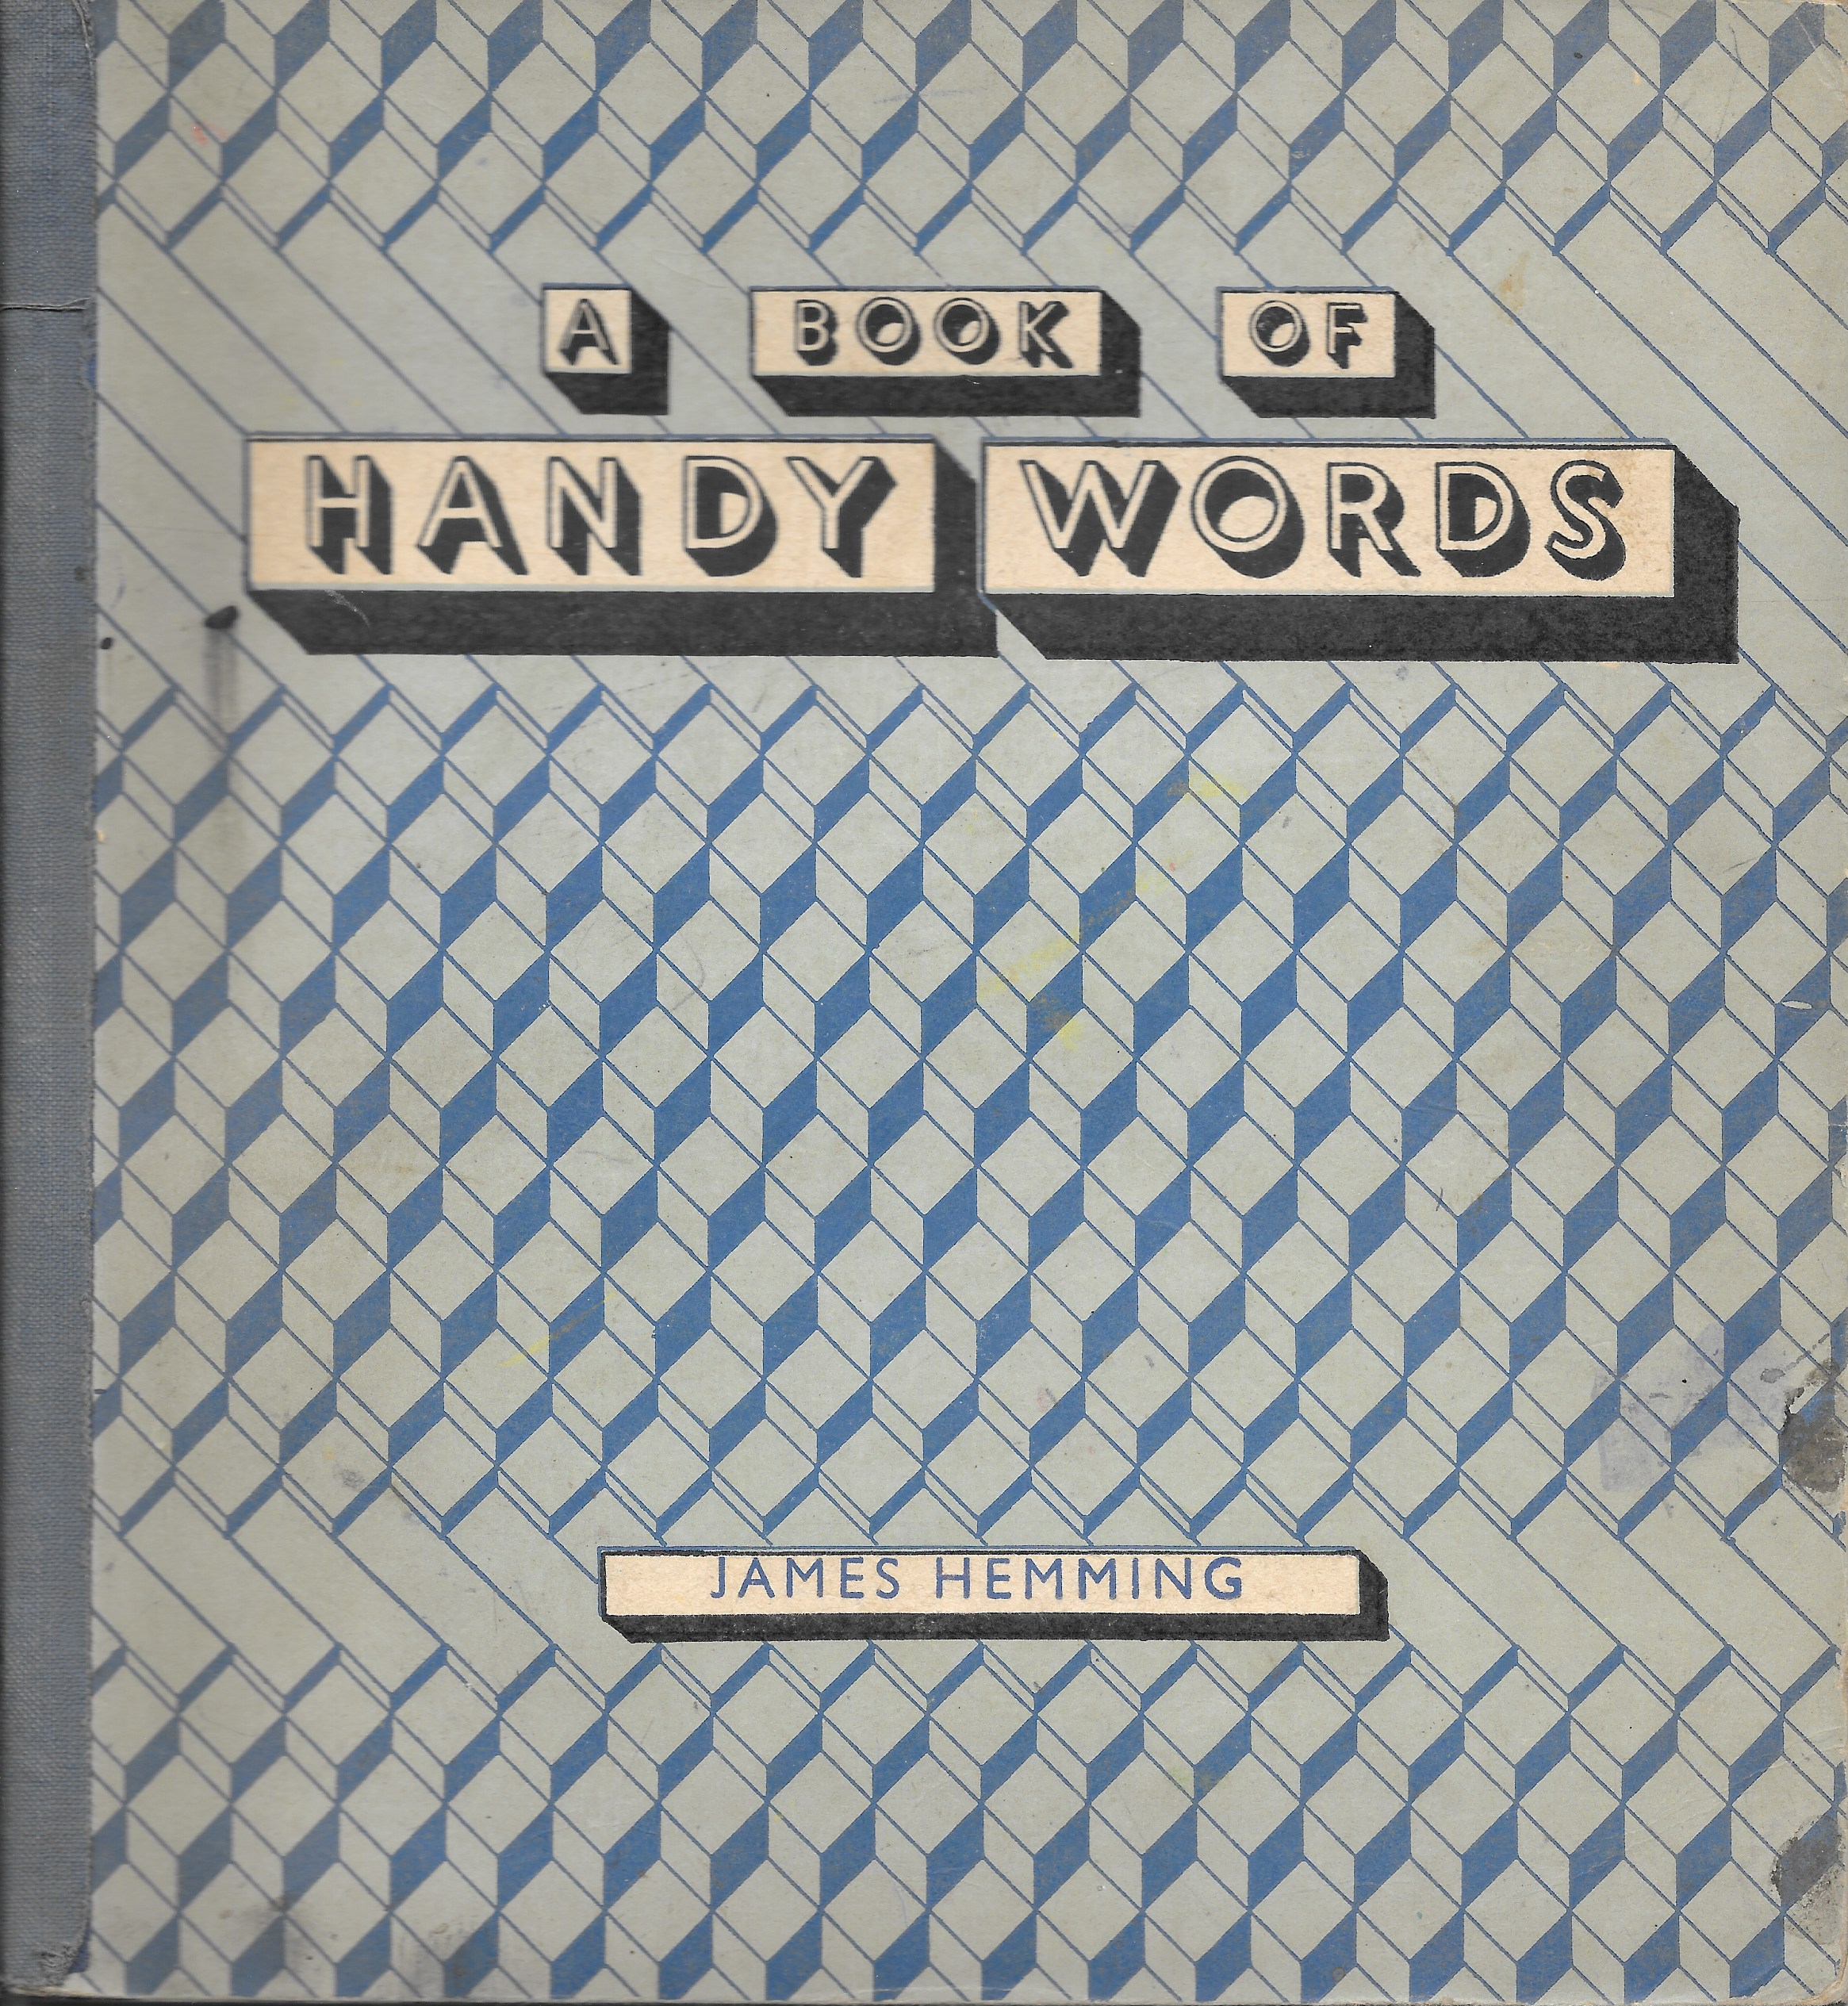 A book of handy words by James Hemming